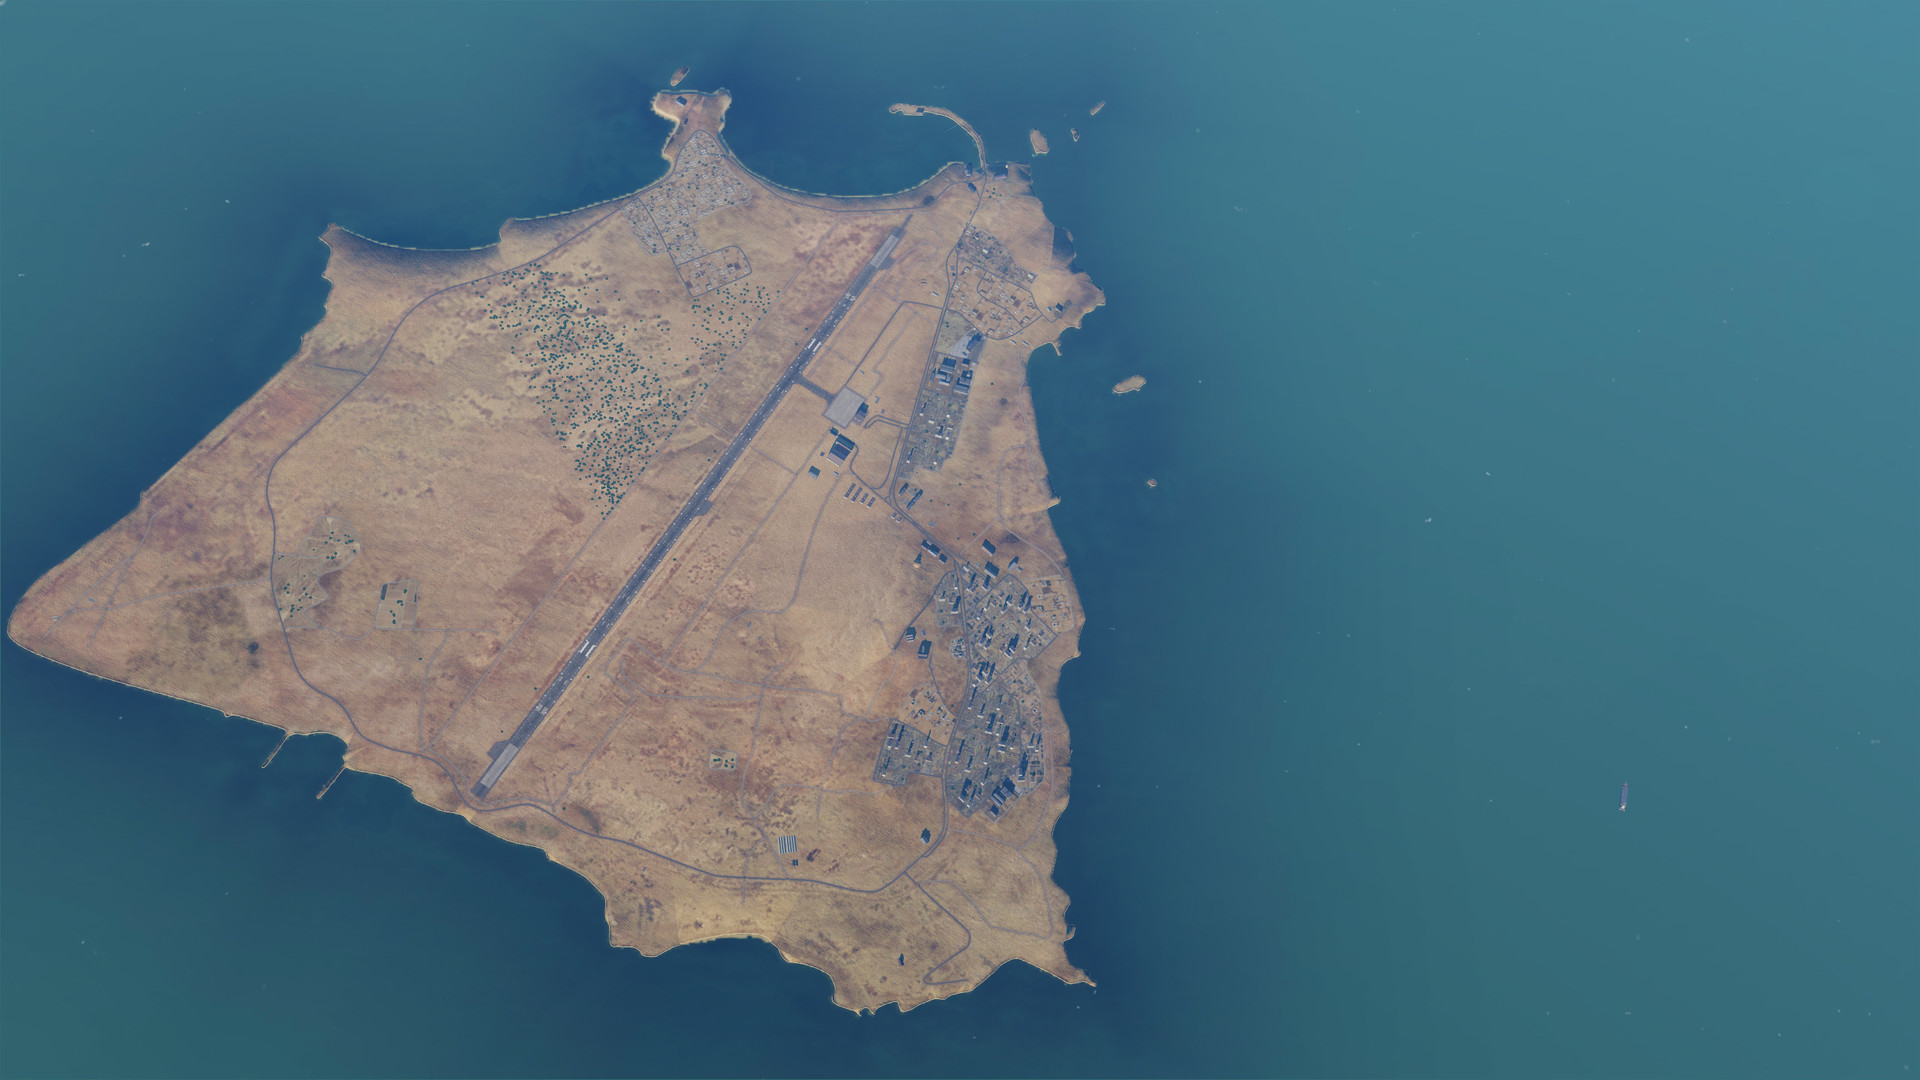 Persian Gulf Map for DCS World on Steam